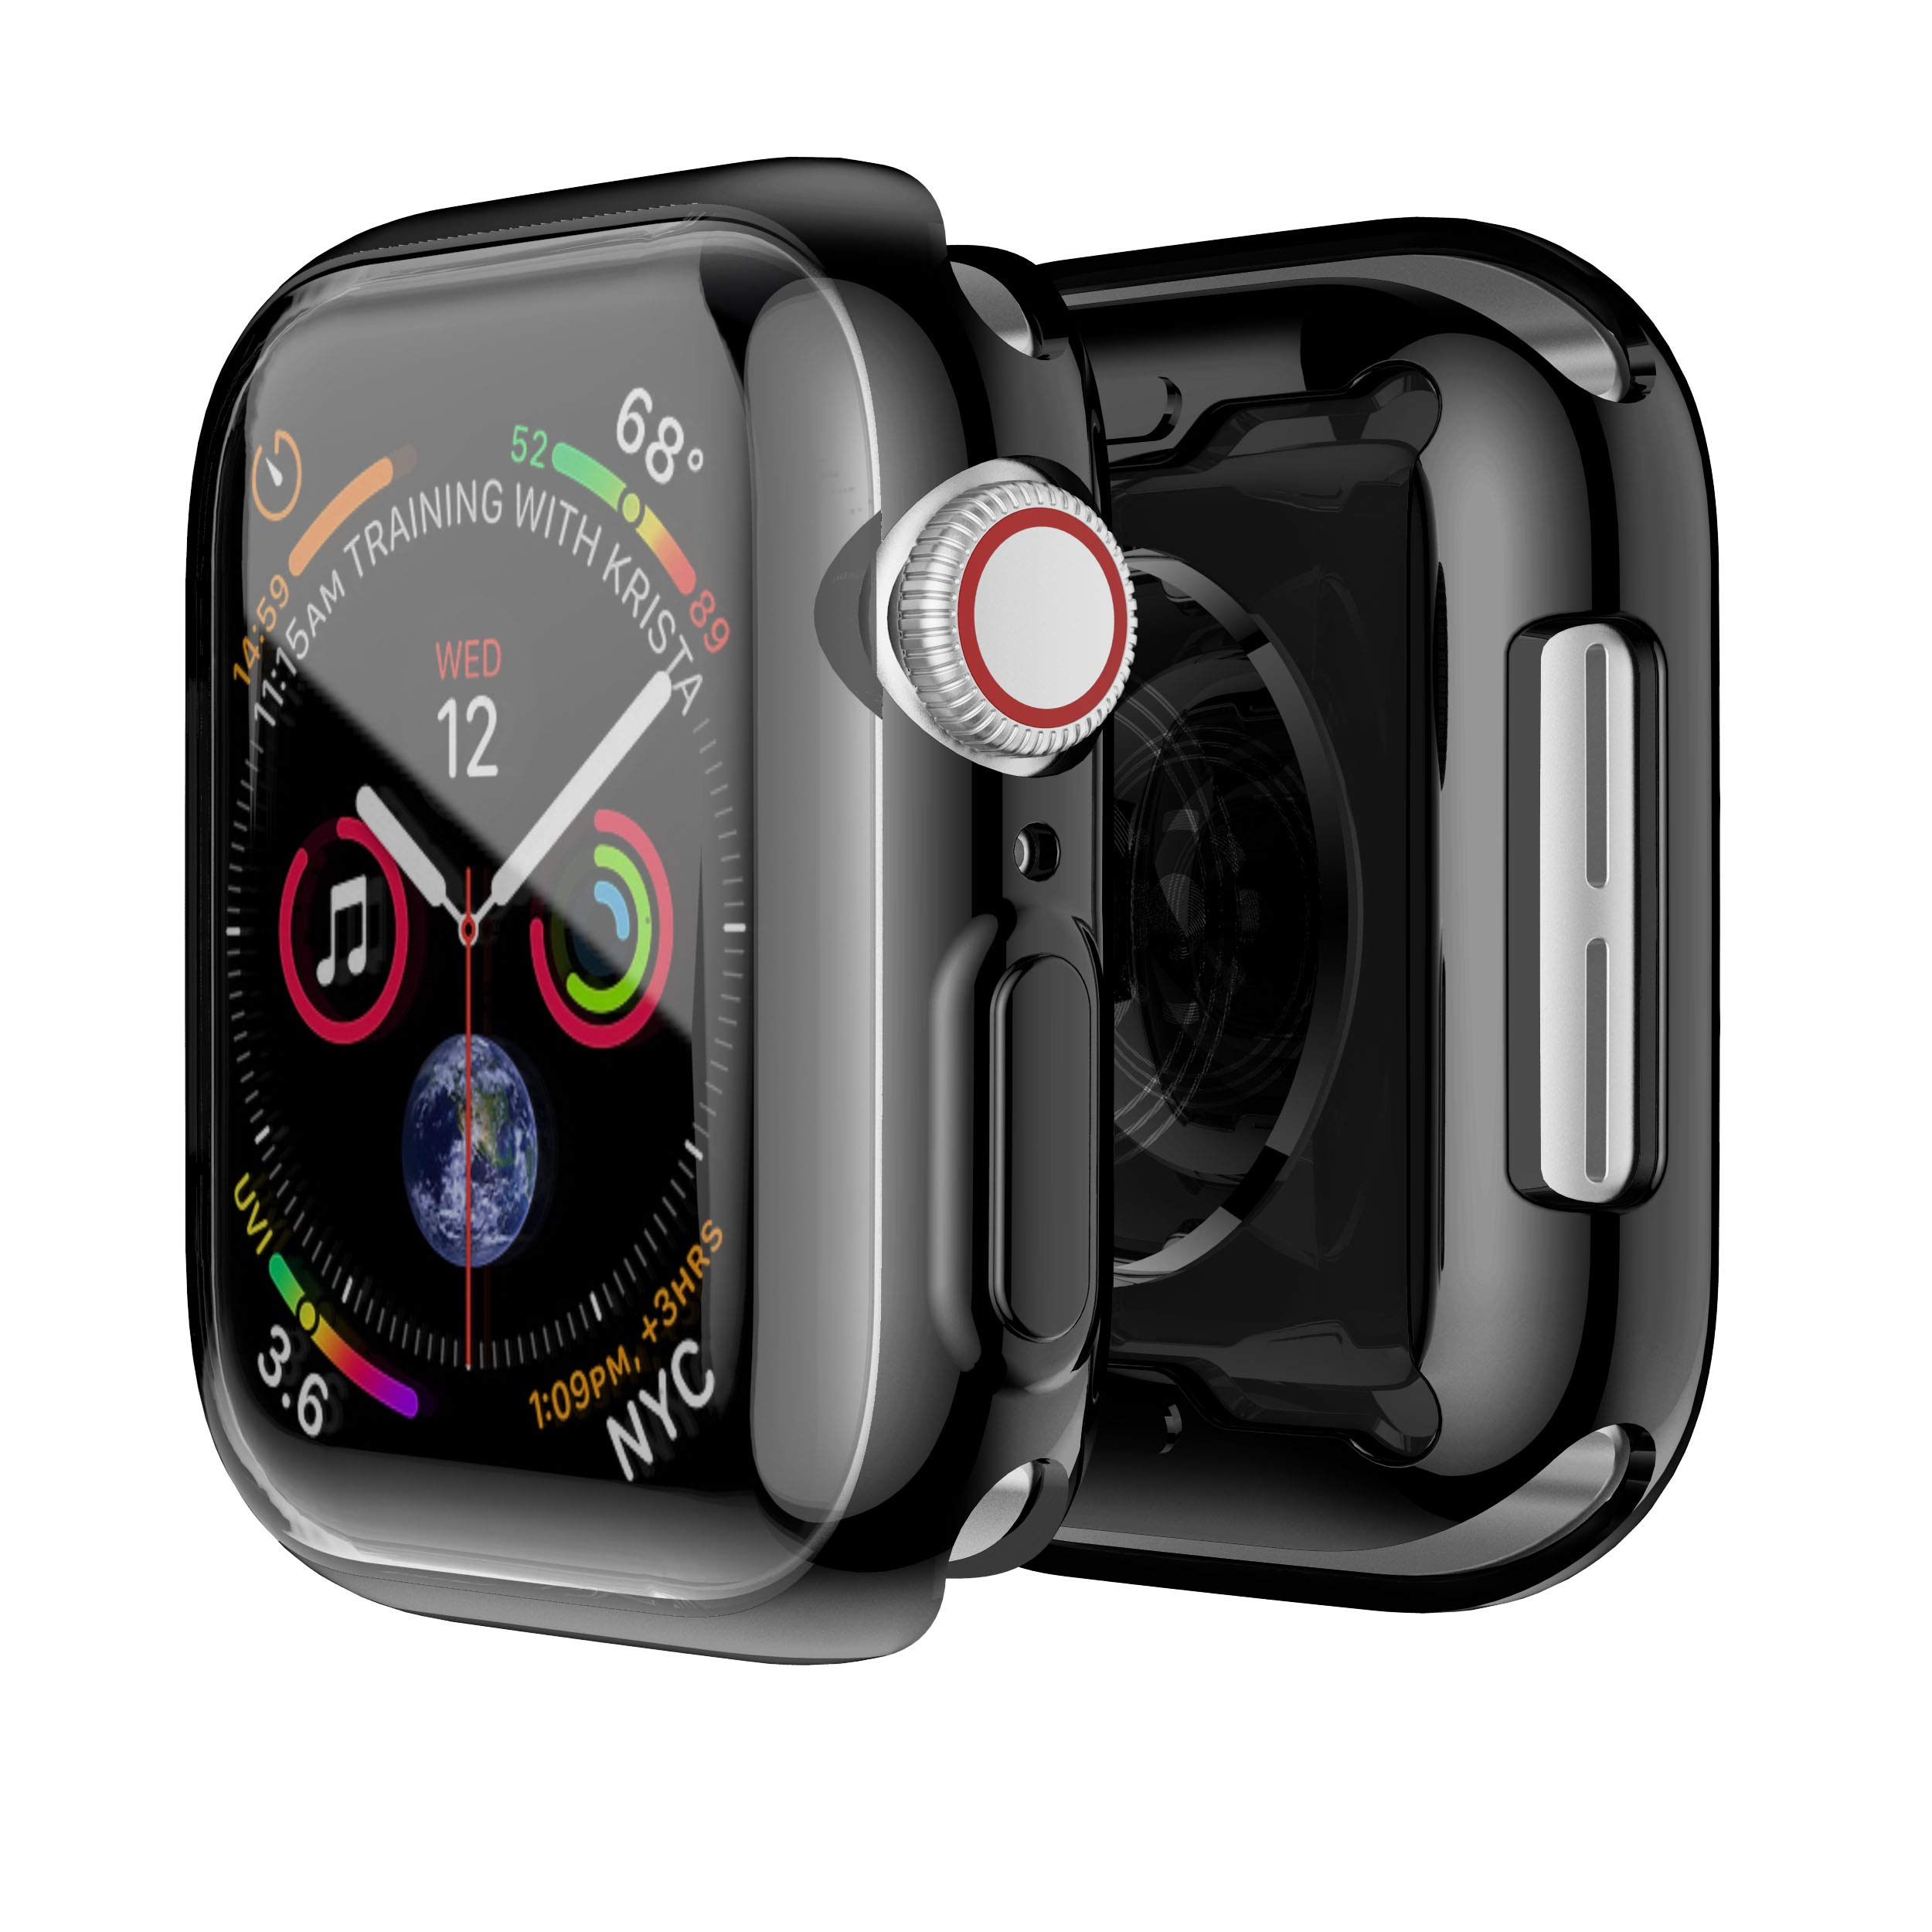 Smiling Case for Apple Watch Series 4 40mm with Built in TPU Clear Screen Protector - All Around Protective Case High Definition Clear Ultra-Thin Cover for Apple iwatch 40mm Series 4 (Black) by Smiling